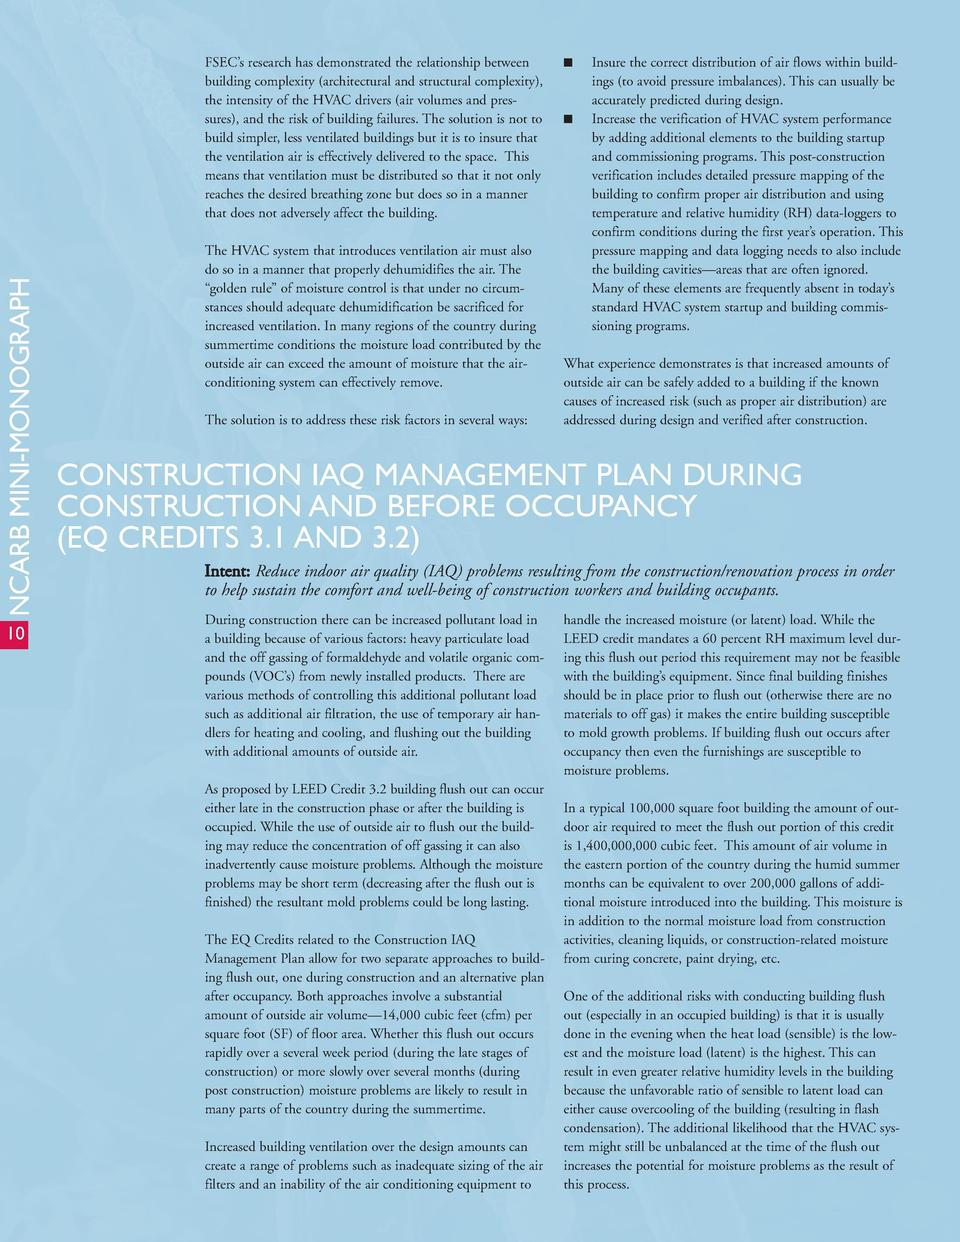 NCARB MINI-MONOGRAPH  FSEC   s research has demonstrated the relationship between building complexity  architectural and s...